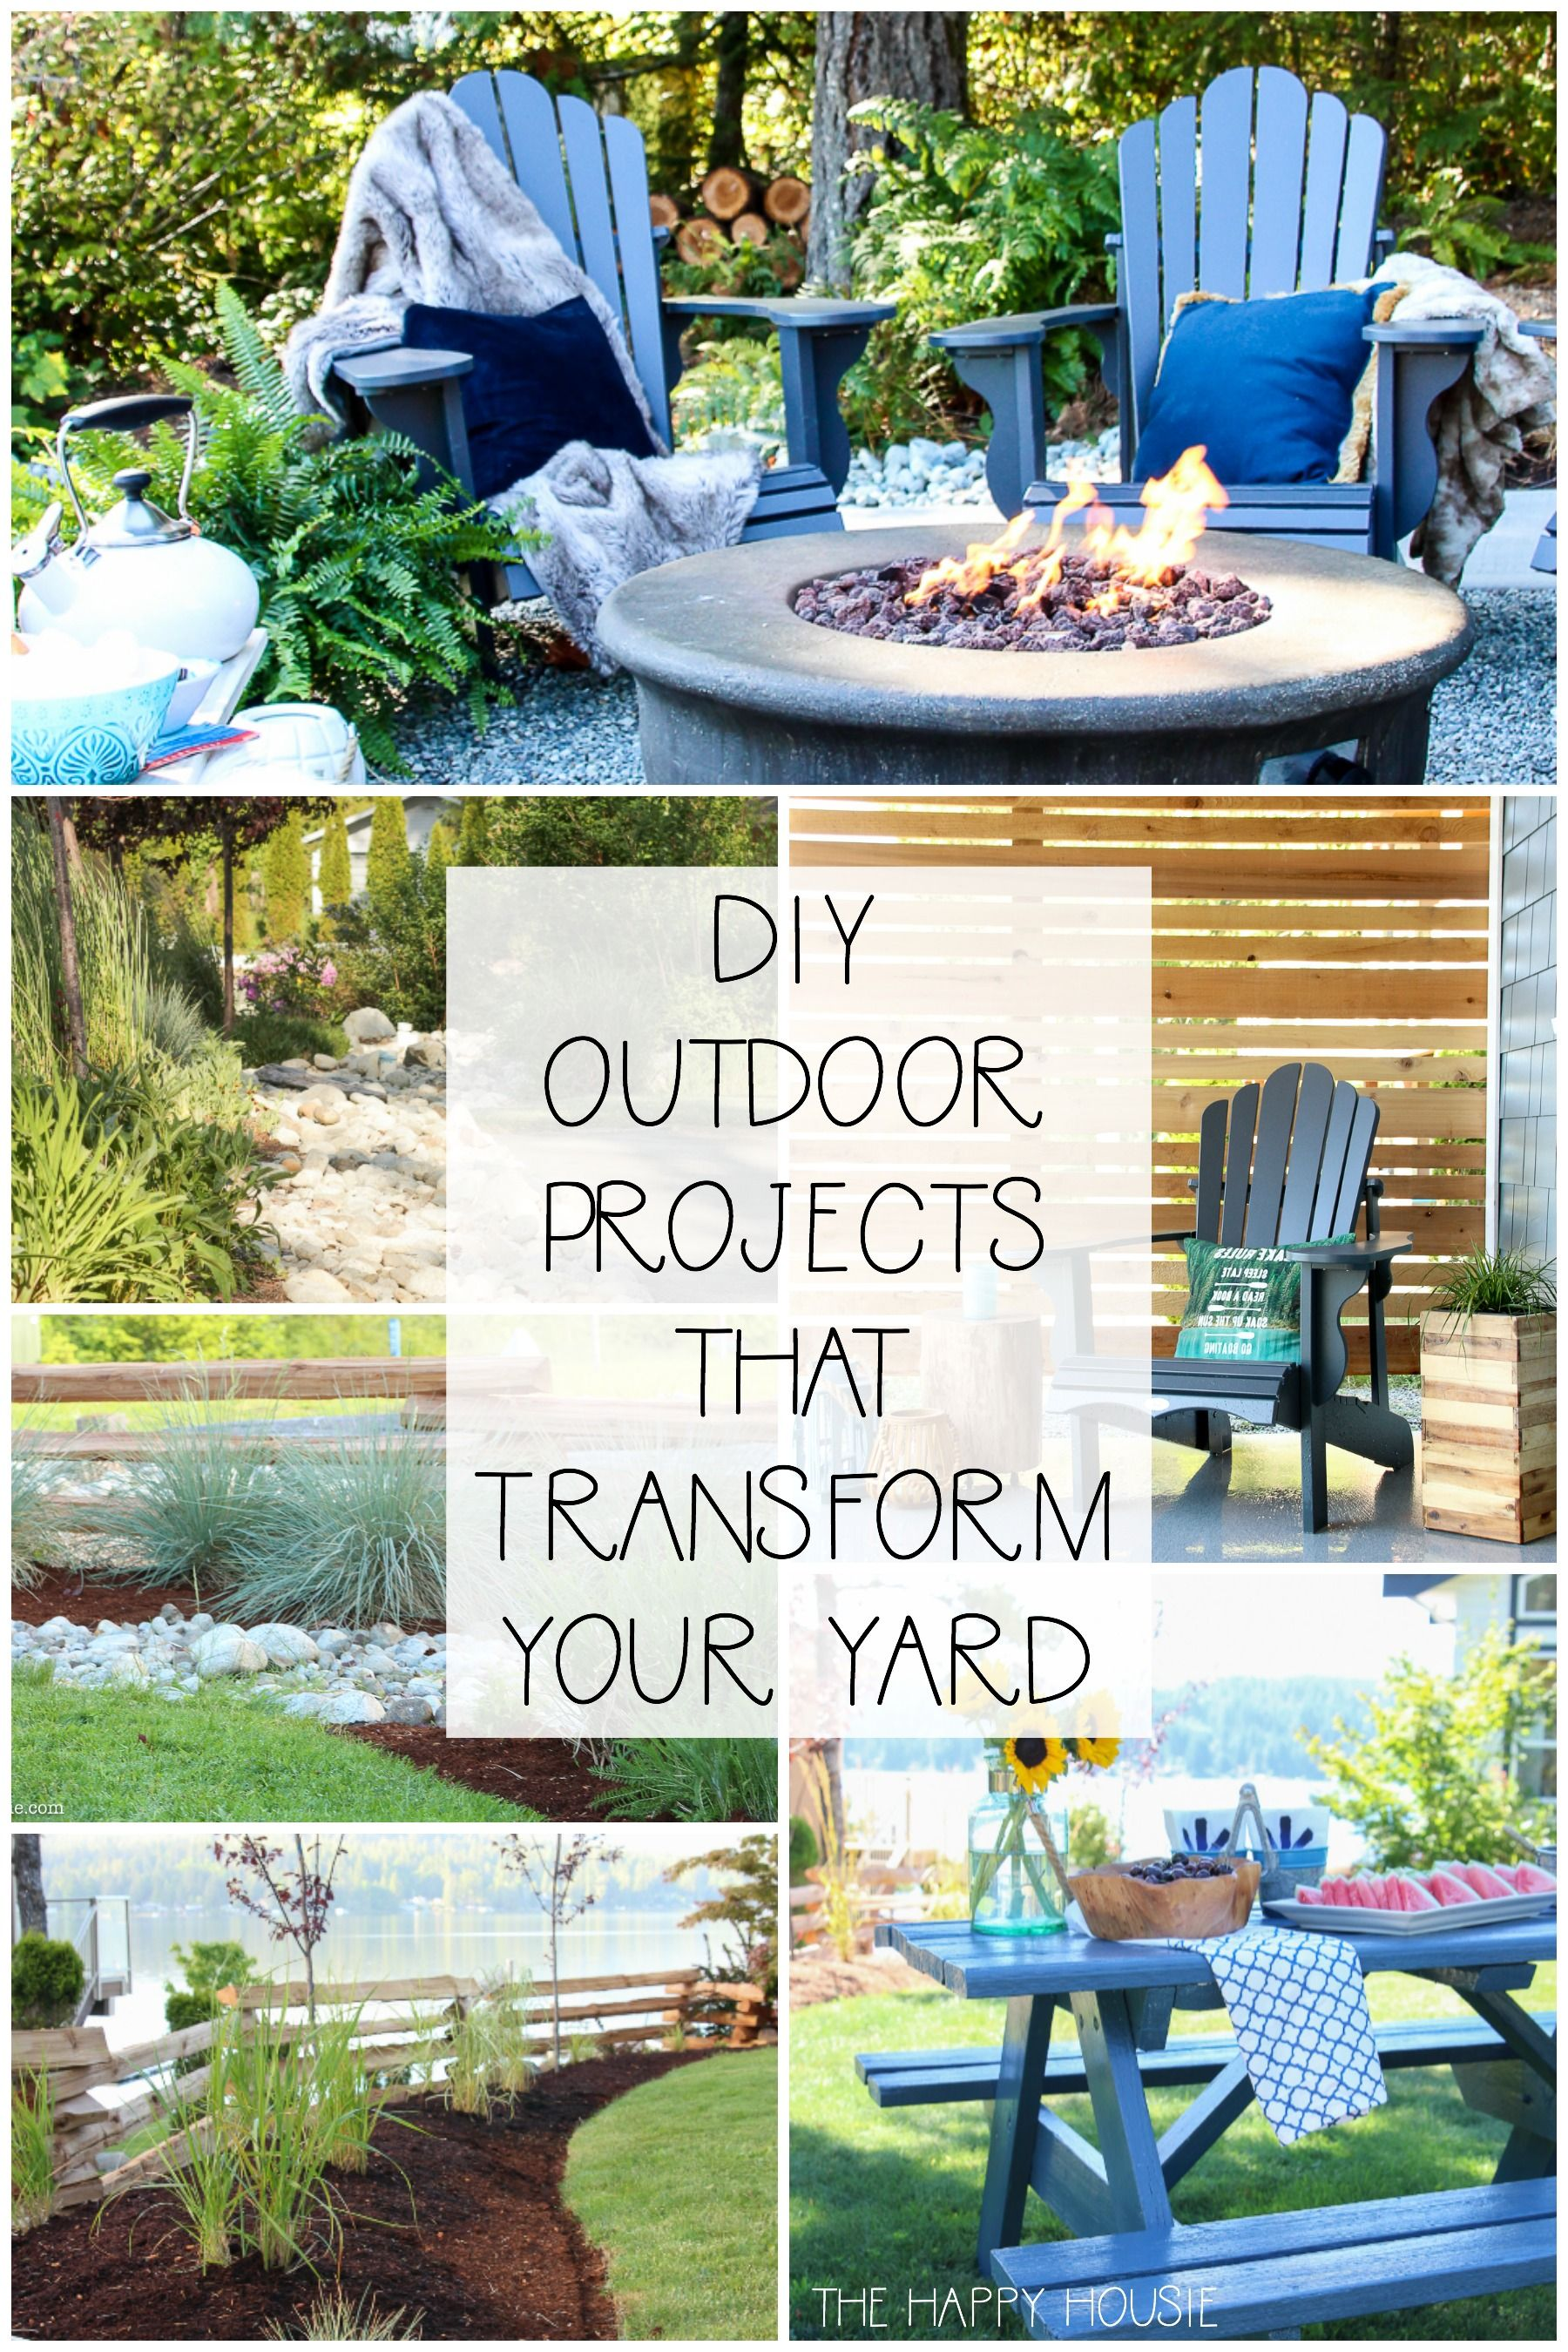 DIY Outdoor Projects to Transform Your Yard | outside ...